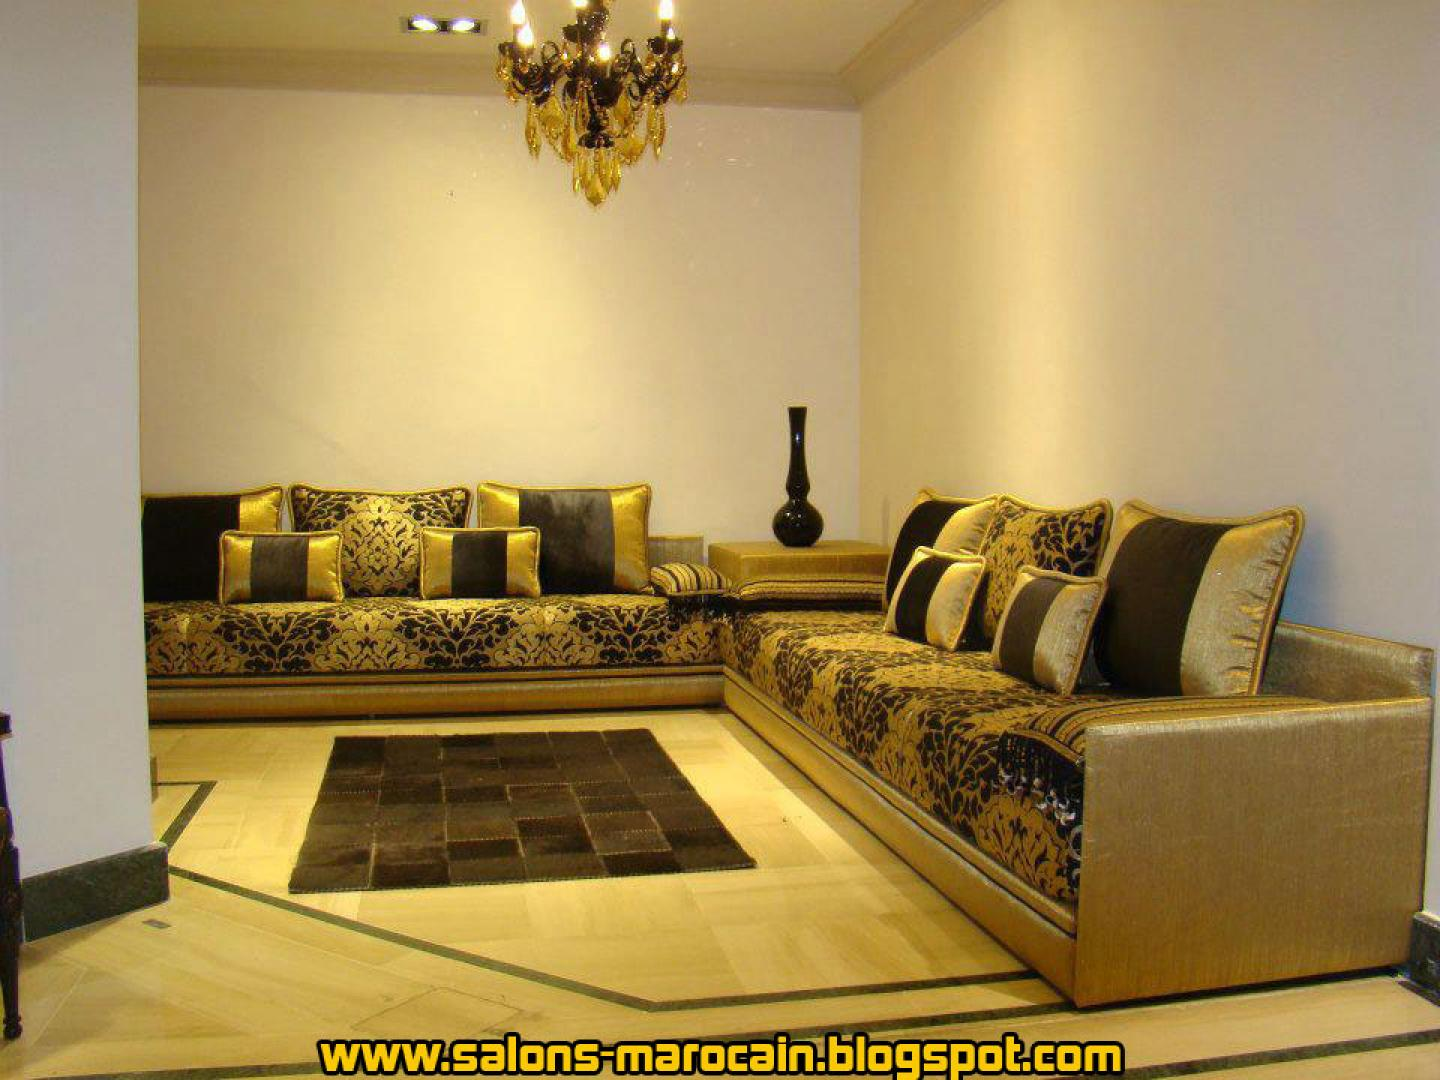 deco salon marocain moderne. Black Bedroom Furniture Sets. Home Design Ideas